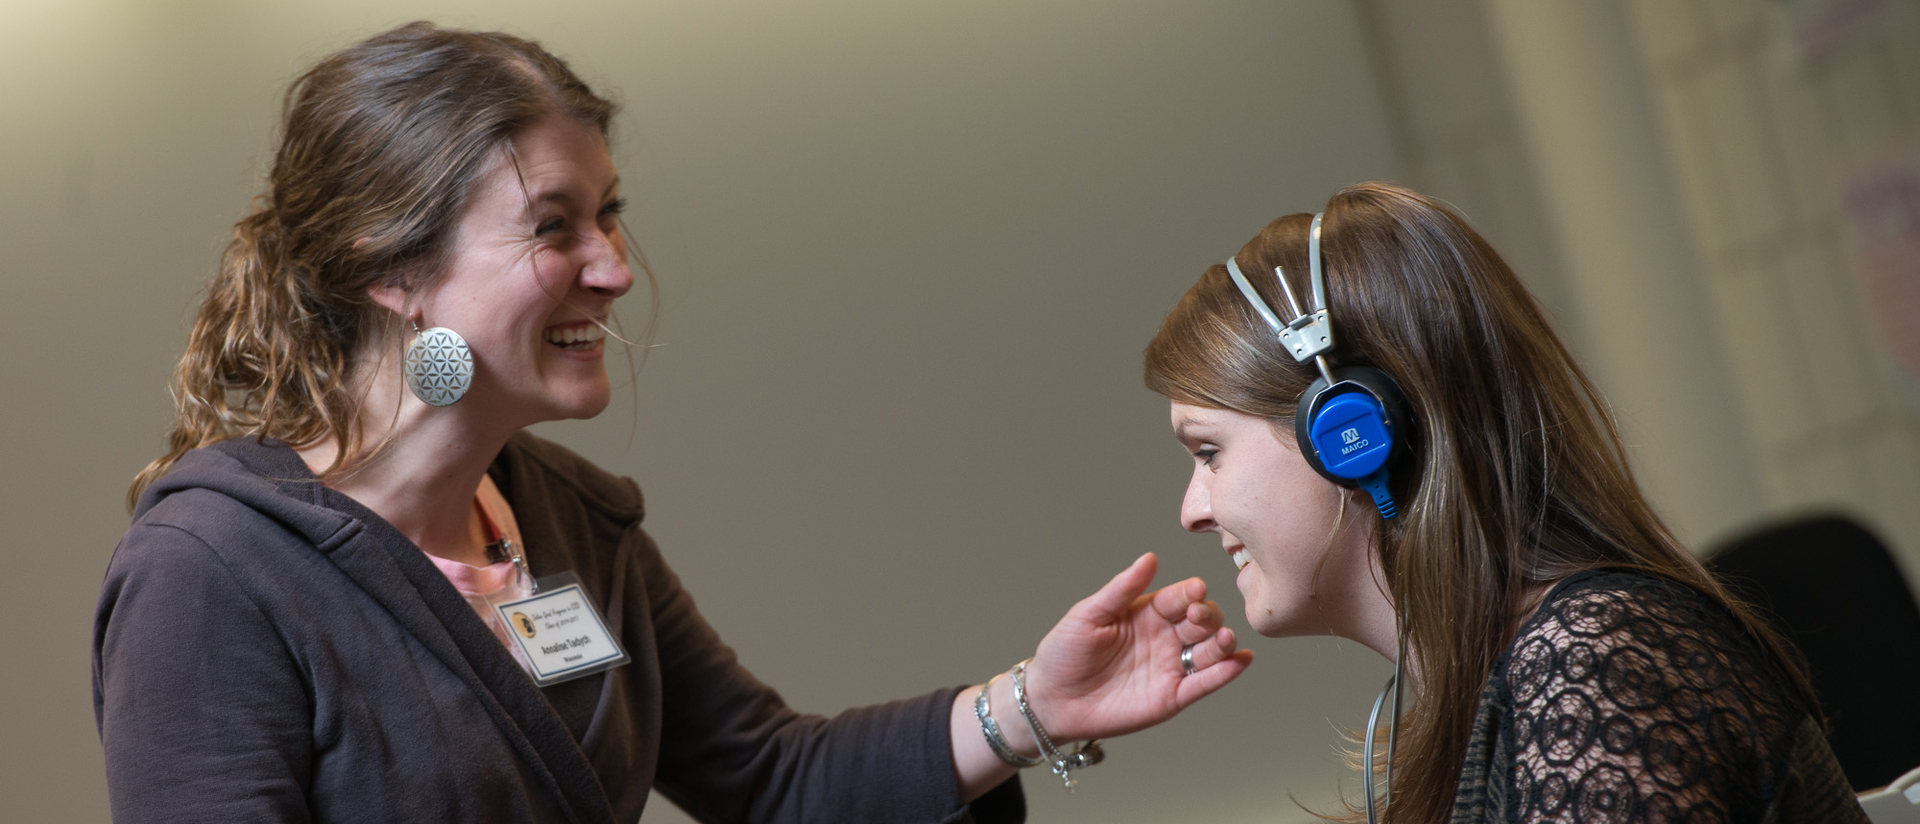 Center for Communication Disorders